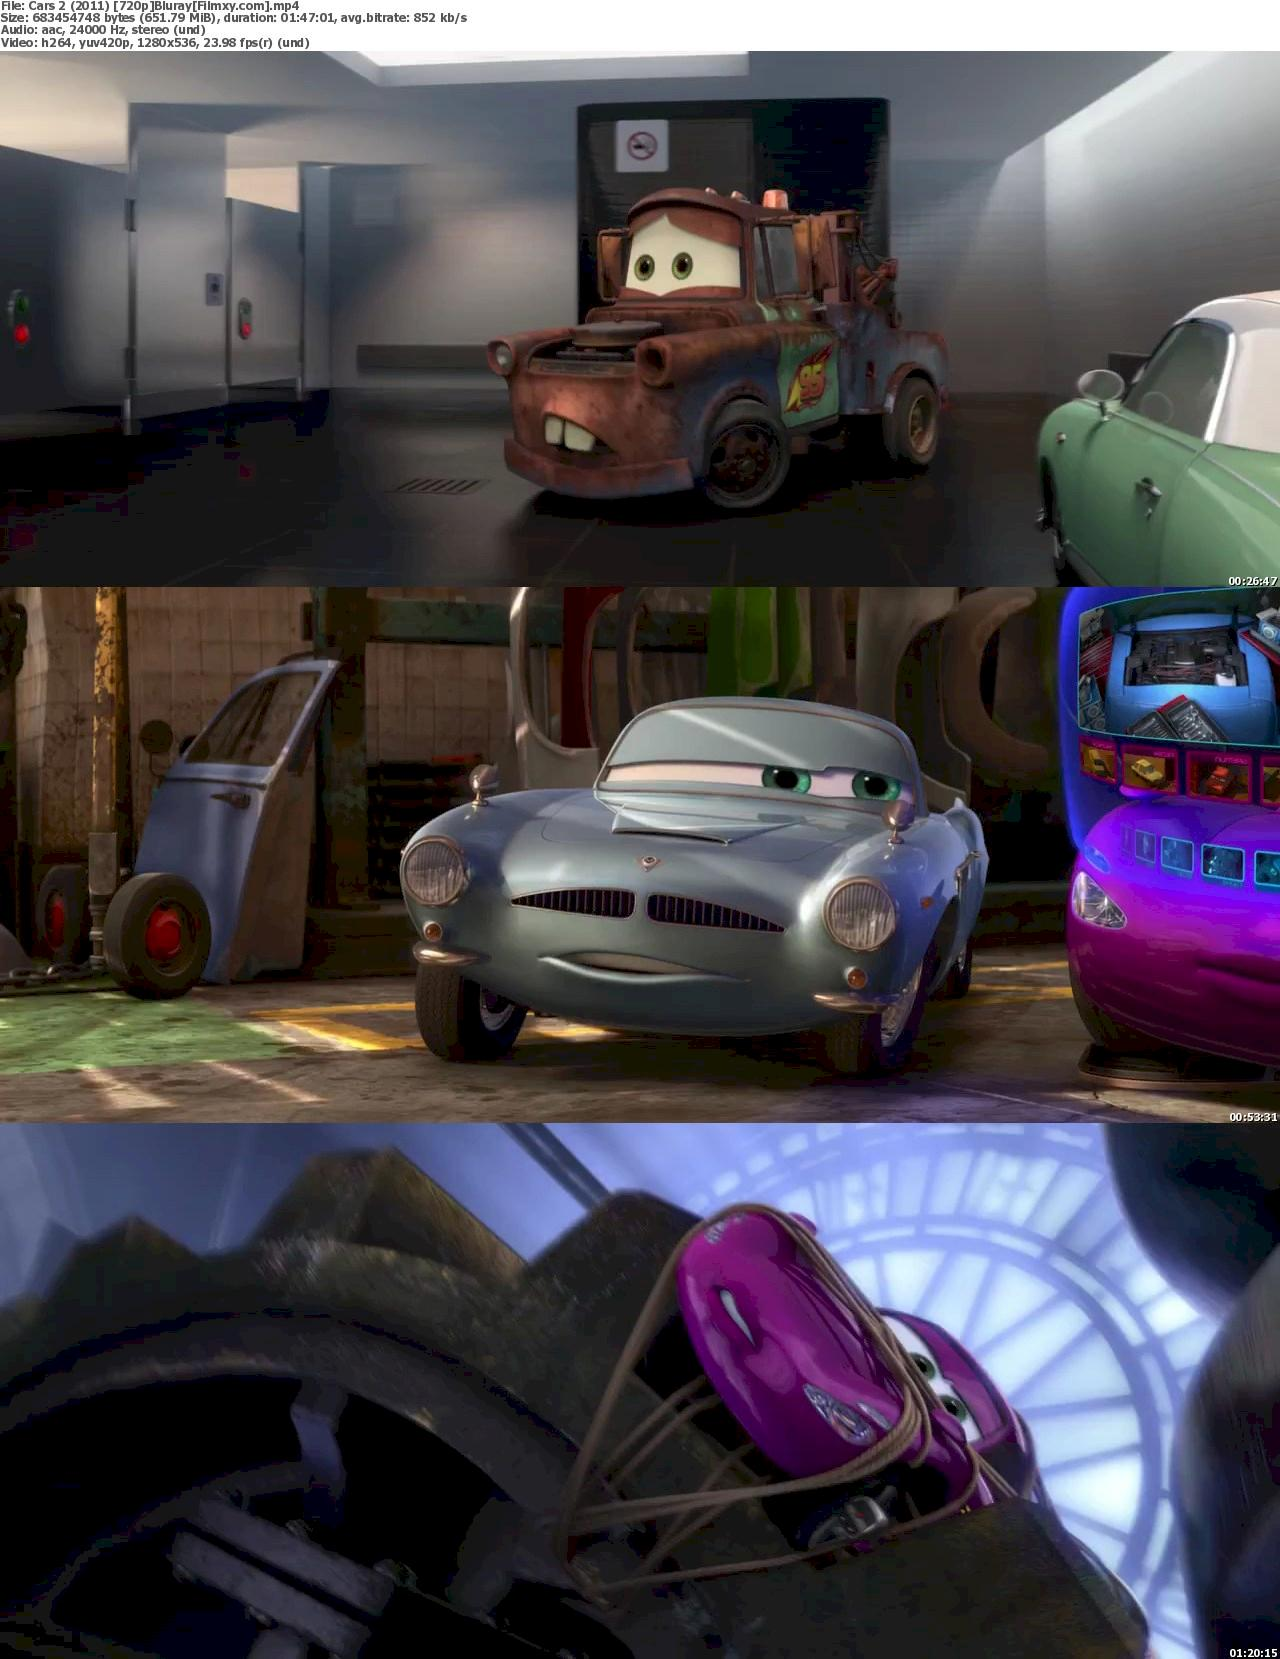 Cars 2 (2011) 720p & 1080p Bluray Free Movies Watch Online 720p Screenshot